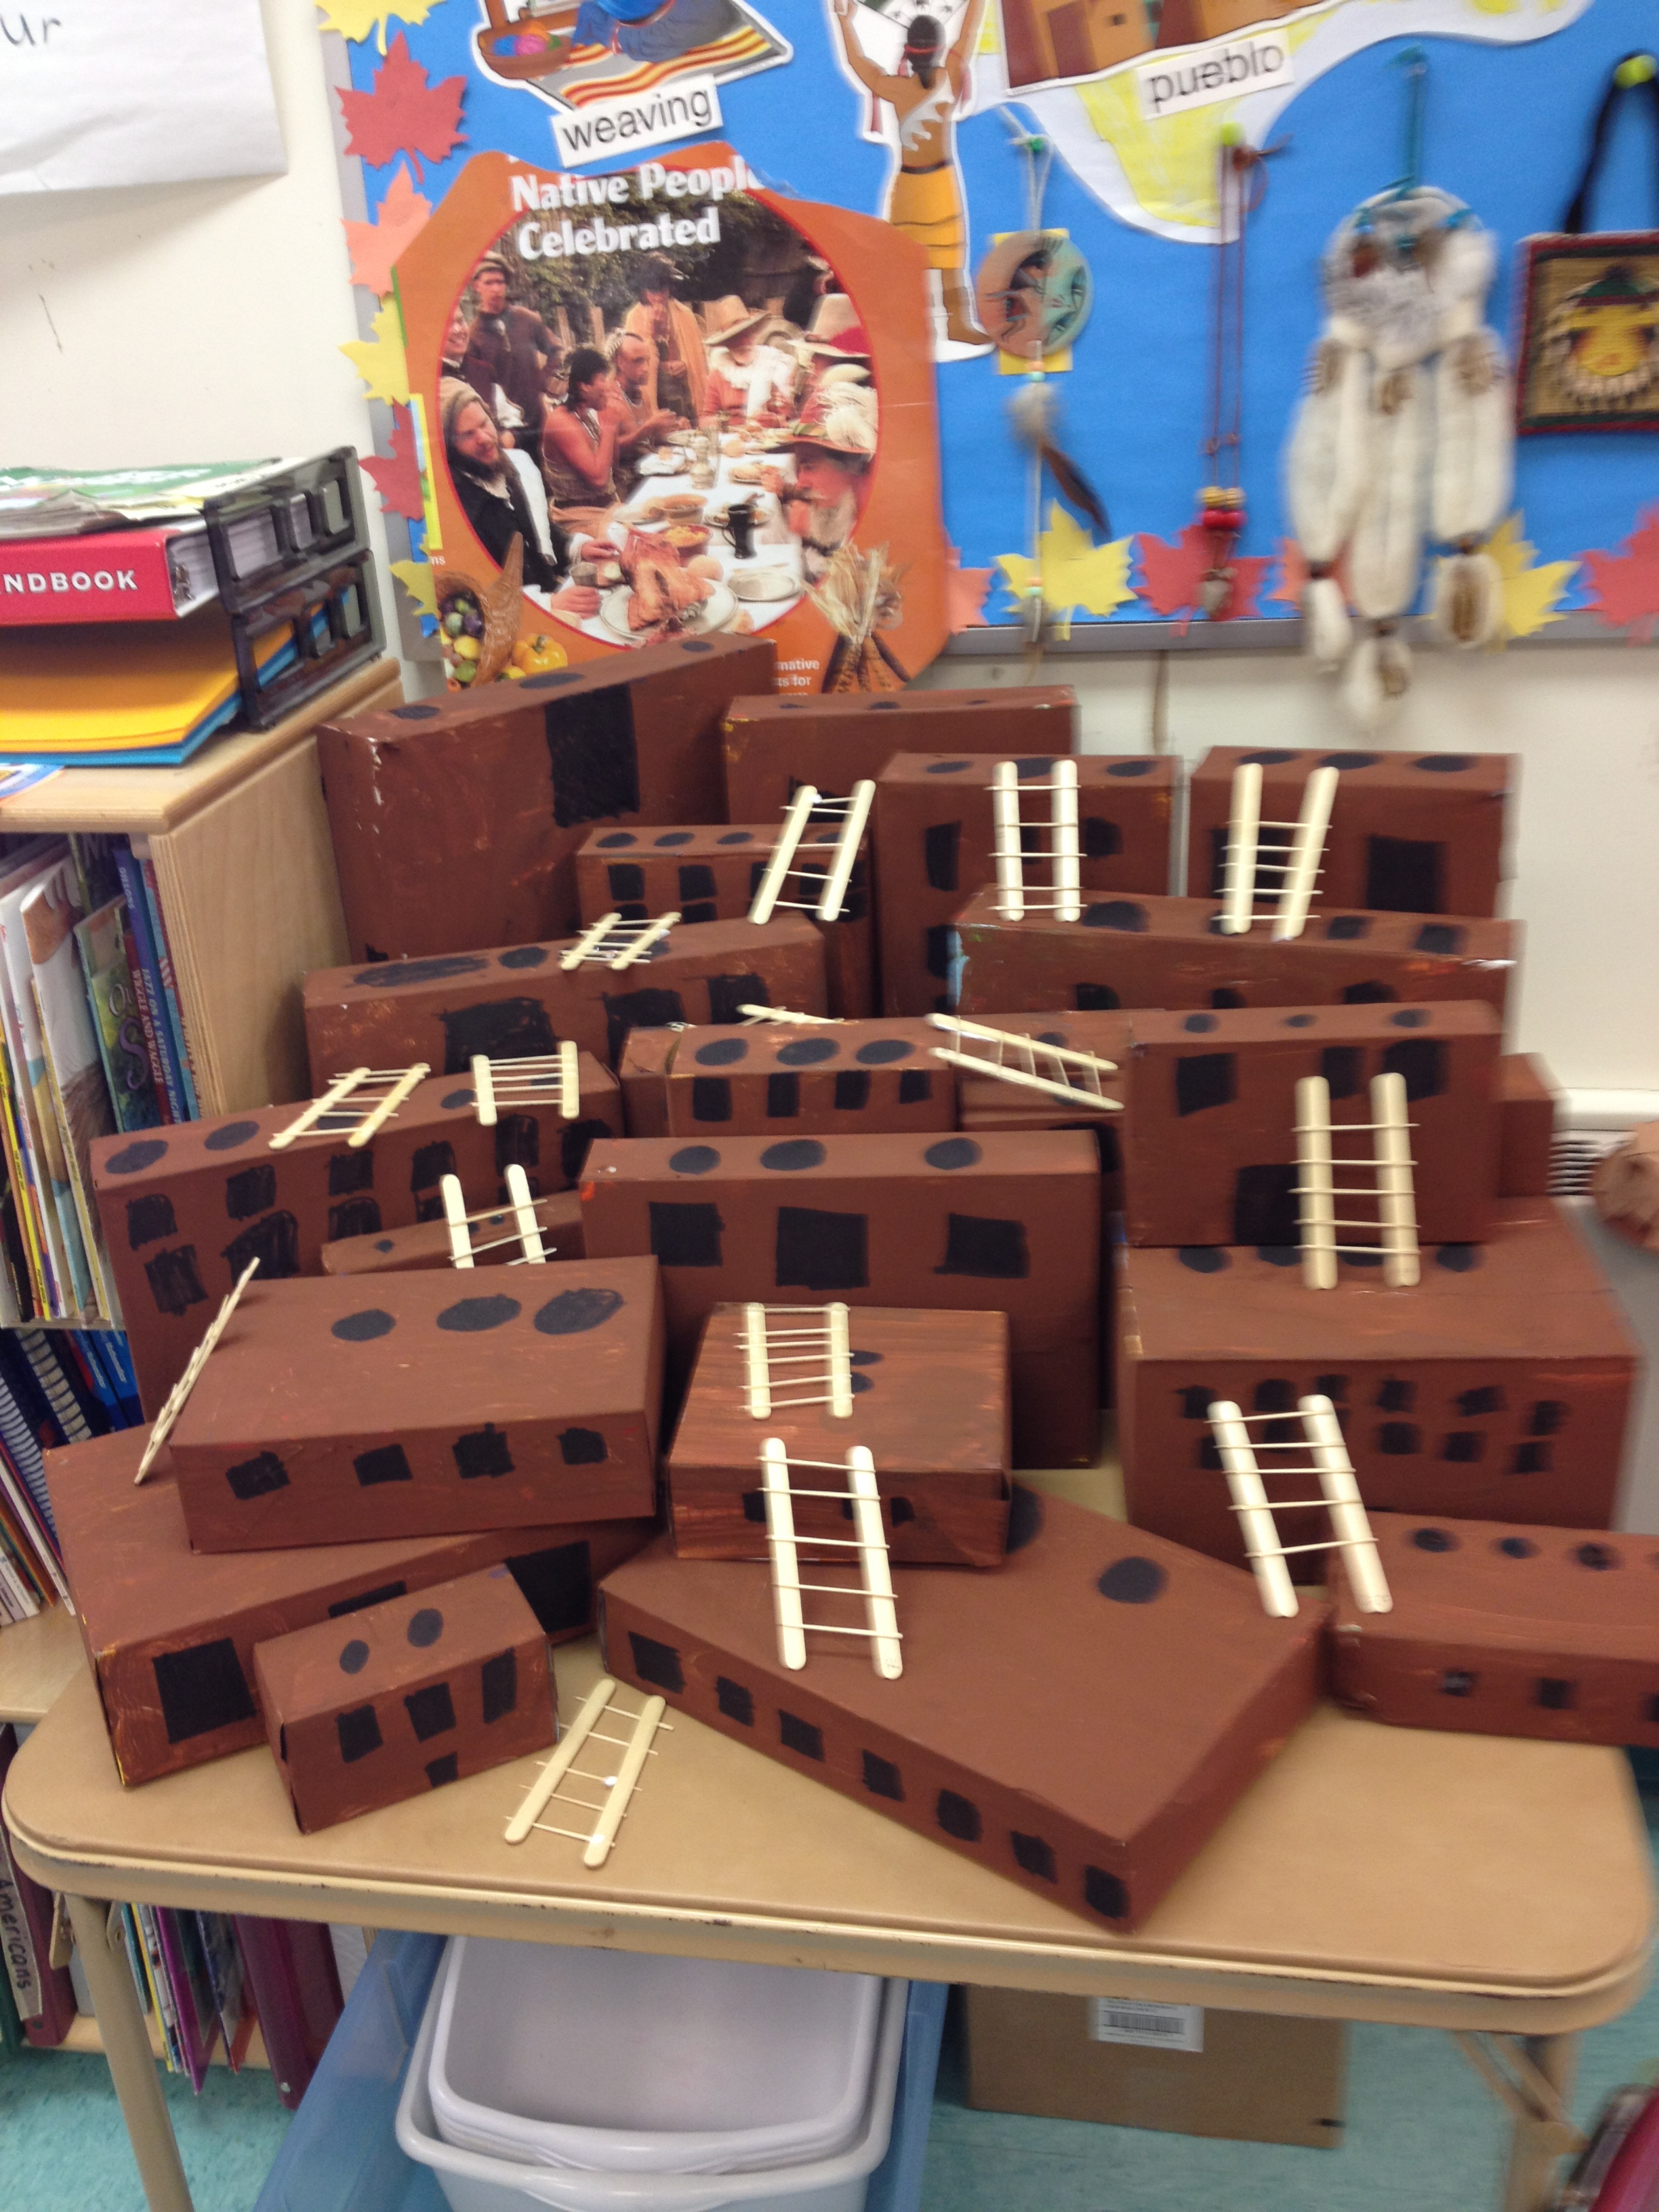 Clroom Pictures & Projects - Team 12 - SSD Public Website ... on native american longhouse project, native american chickee project, native american cherokee indian school project,